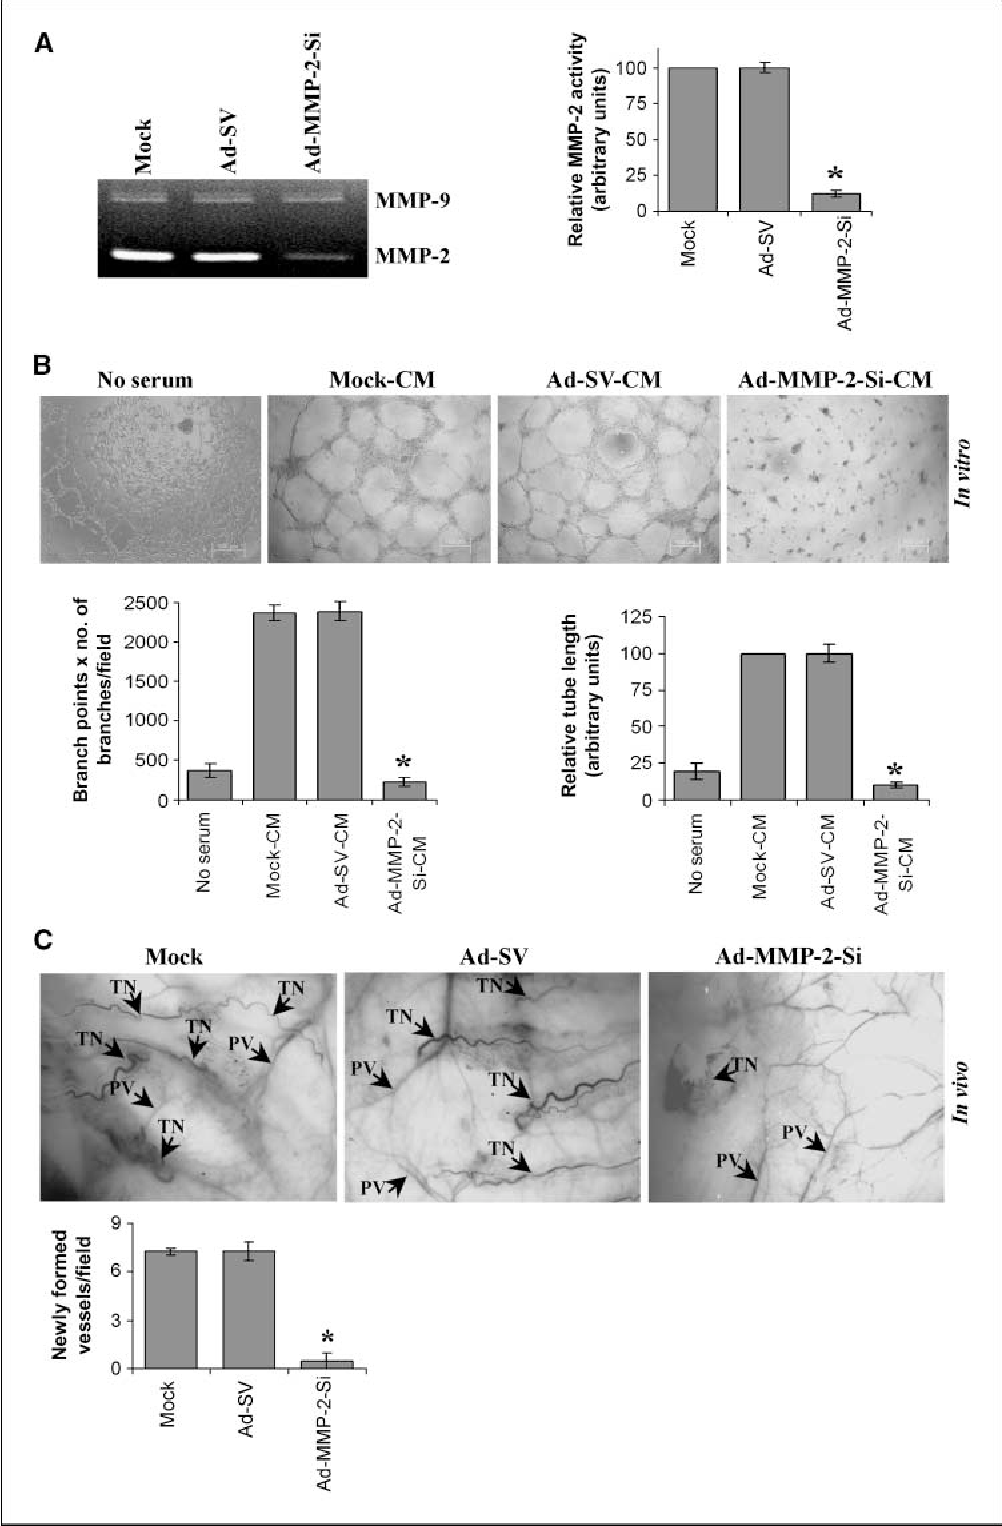 Figure 1. Ad-MMP-2-Si inhibits tumor-induced angiogenesis. A and B, A549 cells were infected as described in Materials and Methods. Briefly, A549 cells were infected with 100 MOI of either Ad-SV or Ad-MMP-2-Si, medium was aspirated after 36 h of incubation and 3 mL of serum-free medium were added, and cells were incubated overnight. A, gelatin zymographic analysis of TCM. The band intensities of MMP-2 activity were quantified by densitometry and normalized with the intensity of the mock-CM band. Columns, mean of triplicate experiments; bars, SE; *, P < 0.01, significant difference from mock-CM. B, in vitro angiogenesis (top ): The TCM was added into 96-well plates, which were coated with Matrigel and preseeded with HMEC (2 104 cells per well). After overnight incubation at 37jC, cells were observed under the bright field microscope for formation of capillary-like structures. Bottom, the degree of angiogenic induction by Mock-CM, Ad-SV-CM, and Ad-MMP-2-Si-CM was quantified for the numerical value of the product of the relative capillary length and number of branch points per field. The capillary length and number of branch points were reduced drastically in HMECs grown in CM from Ad-MMP-2-Si–infected A549 cells. Columns, mean of quadruplicate experiments; bars, SE; *, P < 0.01, significant difference from mock-CM. C, in vivo angiogenic assay using the dorsal skin fold model as described in Materials and Methods. Briefly, the animals were implanted with diffusion chambers containing mock, 100 MOI of either Ad-SV or Ad-MMP-2-Si– infected cells in a dorsal cavity. Ten days after implantation, the animals were sacrificed and the skin fold covering the diffusion chamber was observed under bright field light microscope for the presence of tumor-induced neovasculature (TN ) and preexisting vasculature (PV ) and photographed (top ). The mean number of neovasculature (>20 Am) per field was quantified (bottom ). Columns, mean of quadruplicate experiments; bars, SE; *, P < 0.01